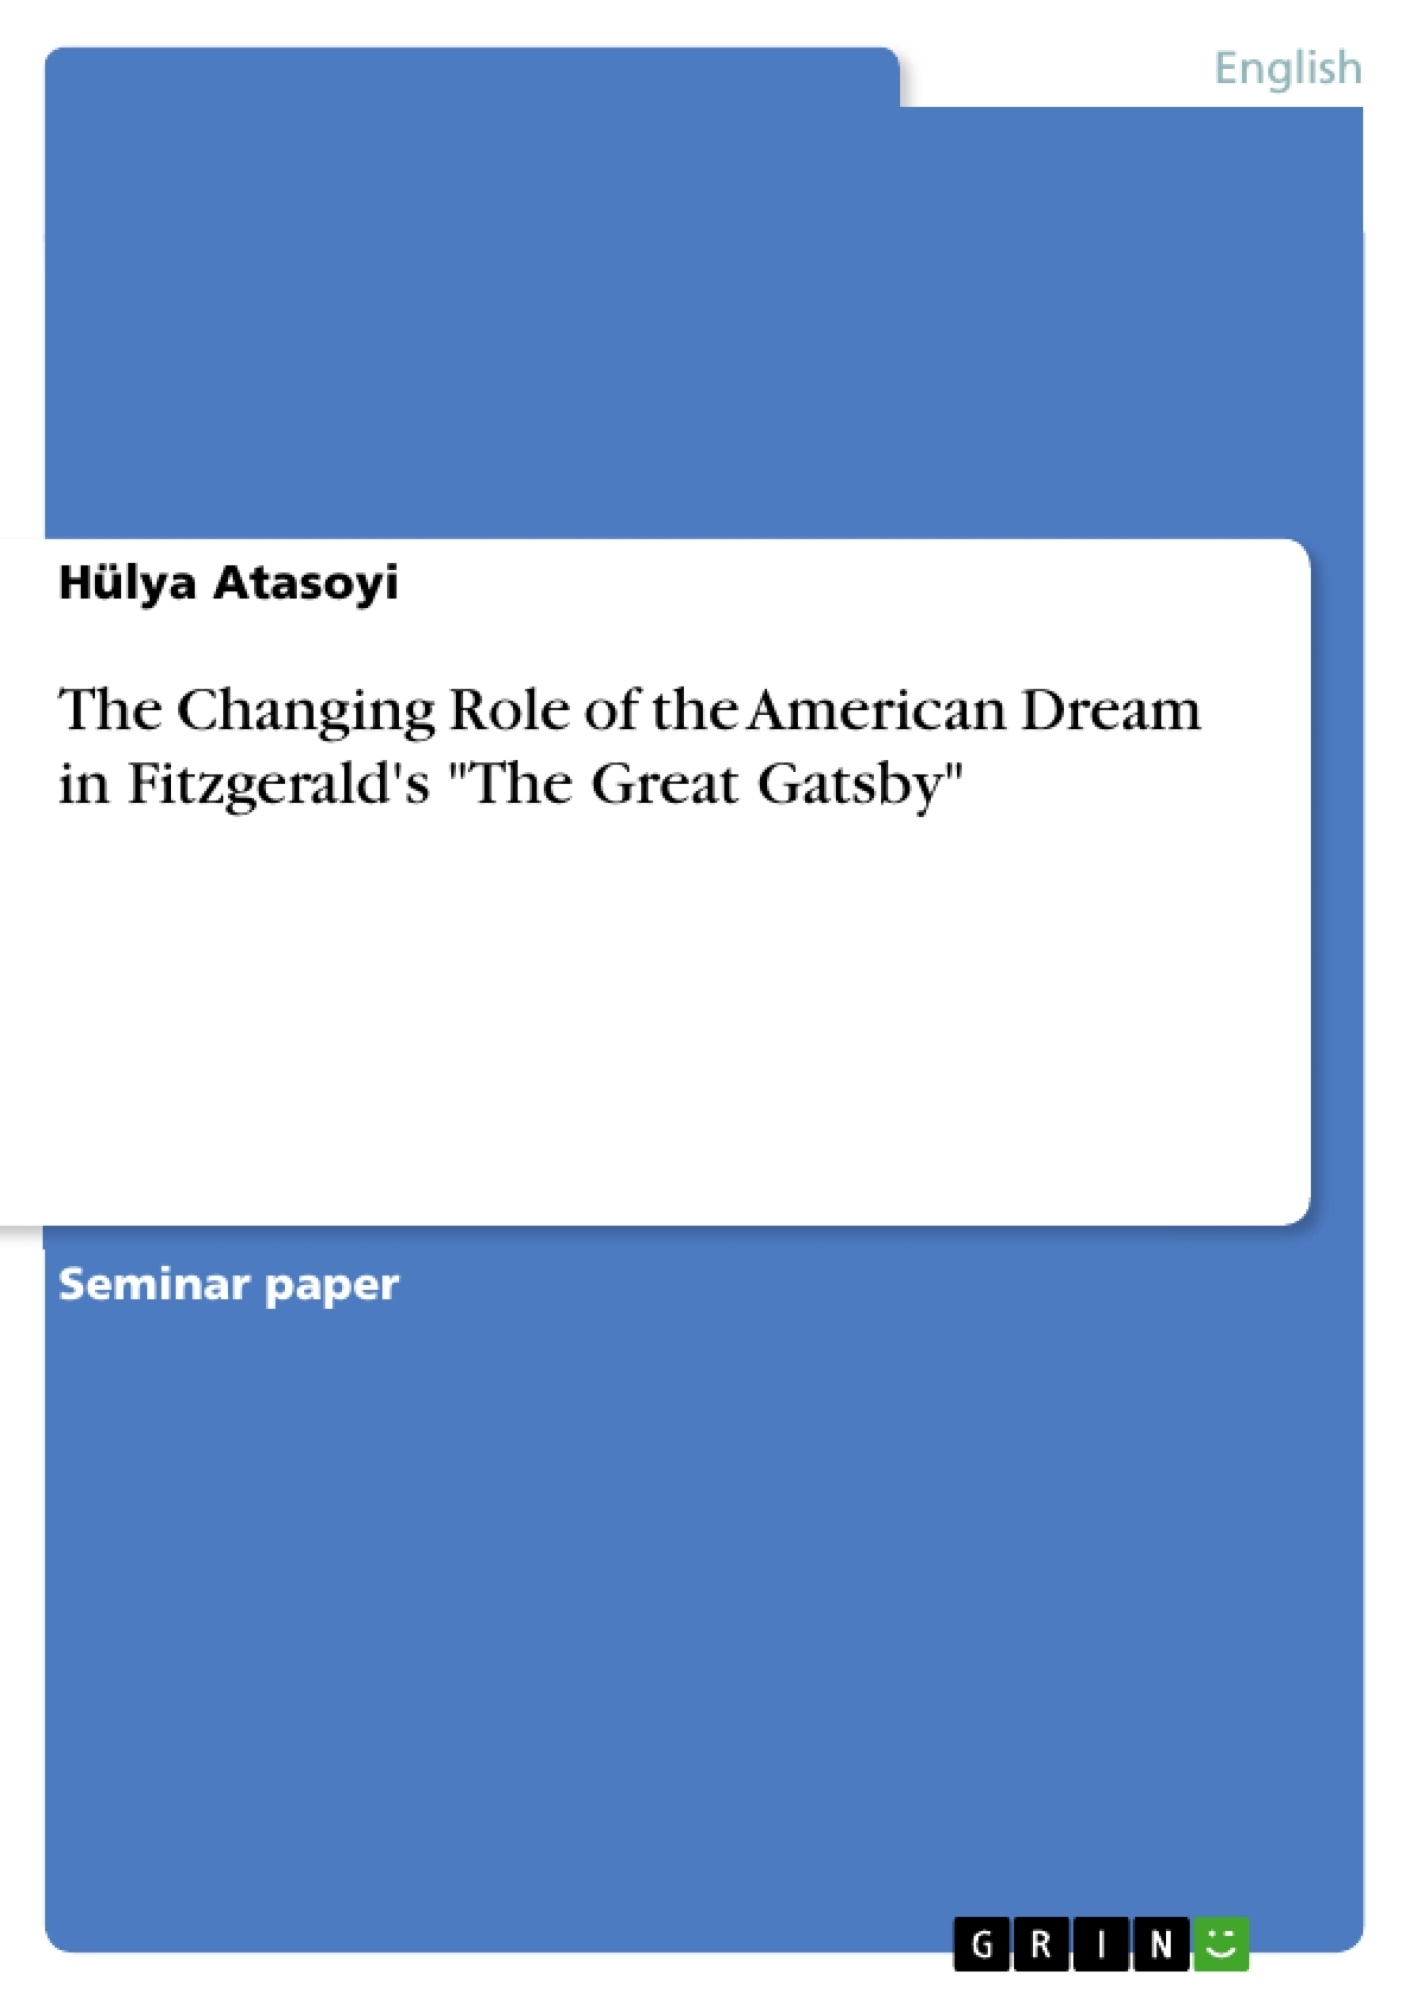 """Title: The Changing Role of the American Dream in Fitzgerald's """"The Great Gatsby"""""""